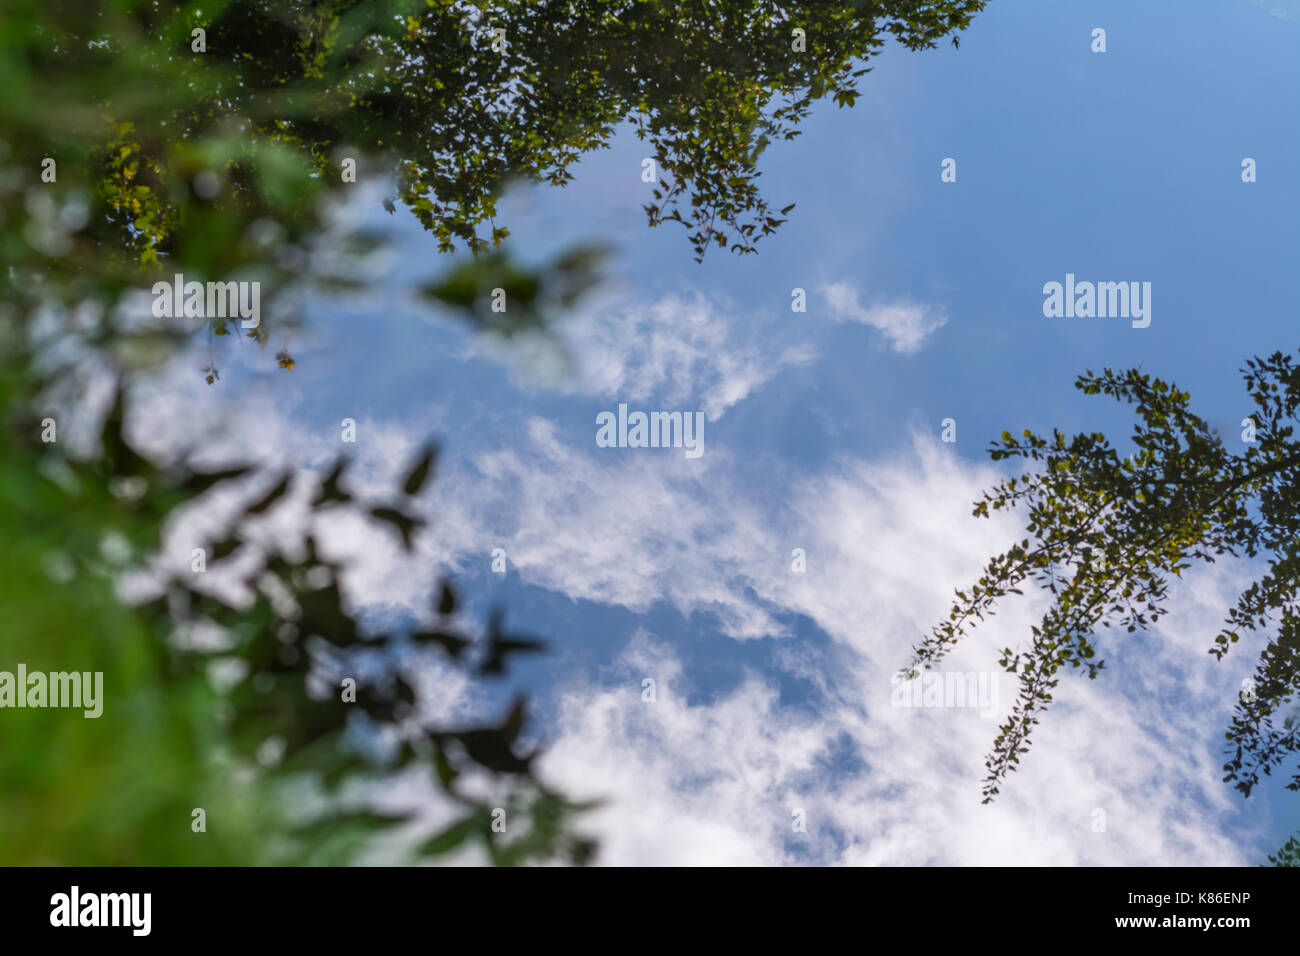 trees-and-blue-sky-reflecting-in-still-w